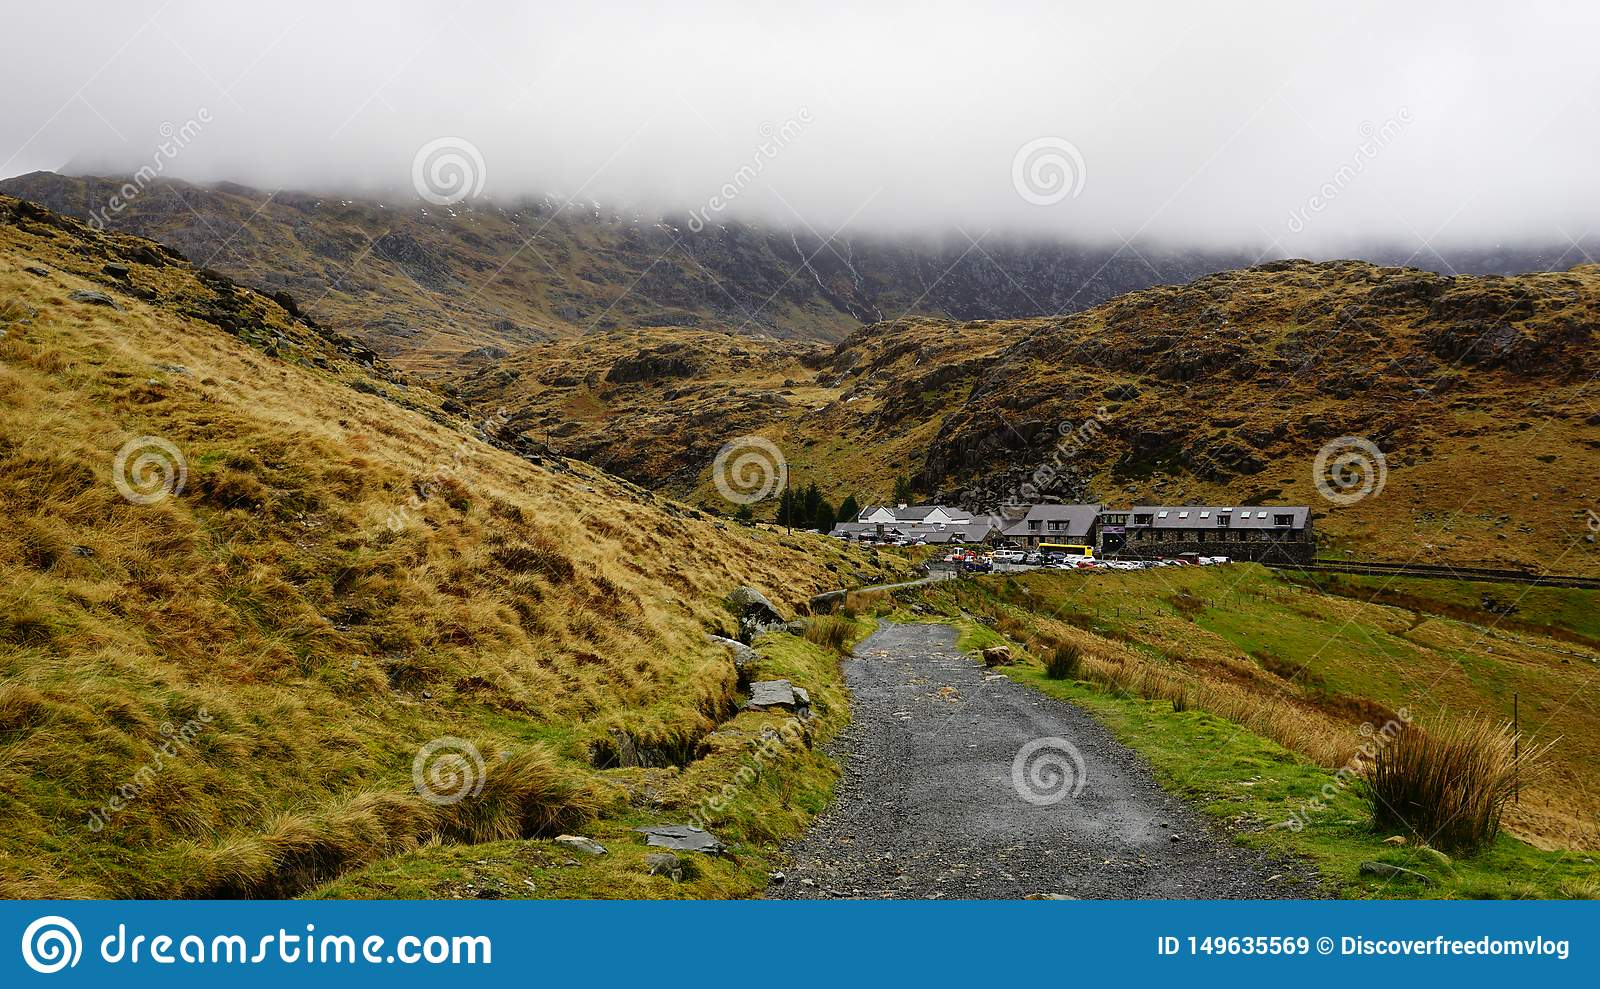 Stone Path with Village Houses in Snowdon, Wales, United Kingdom